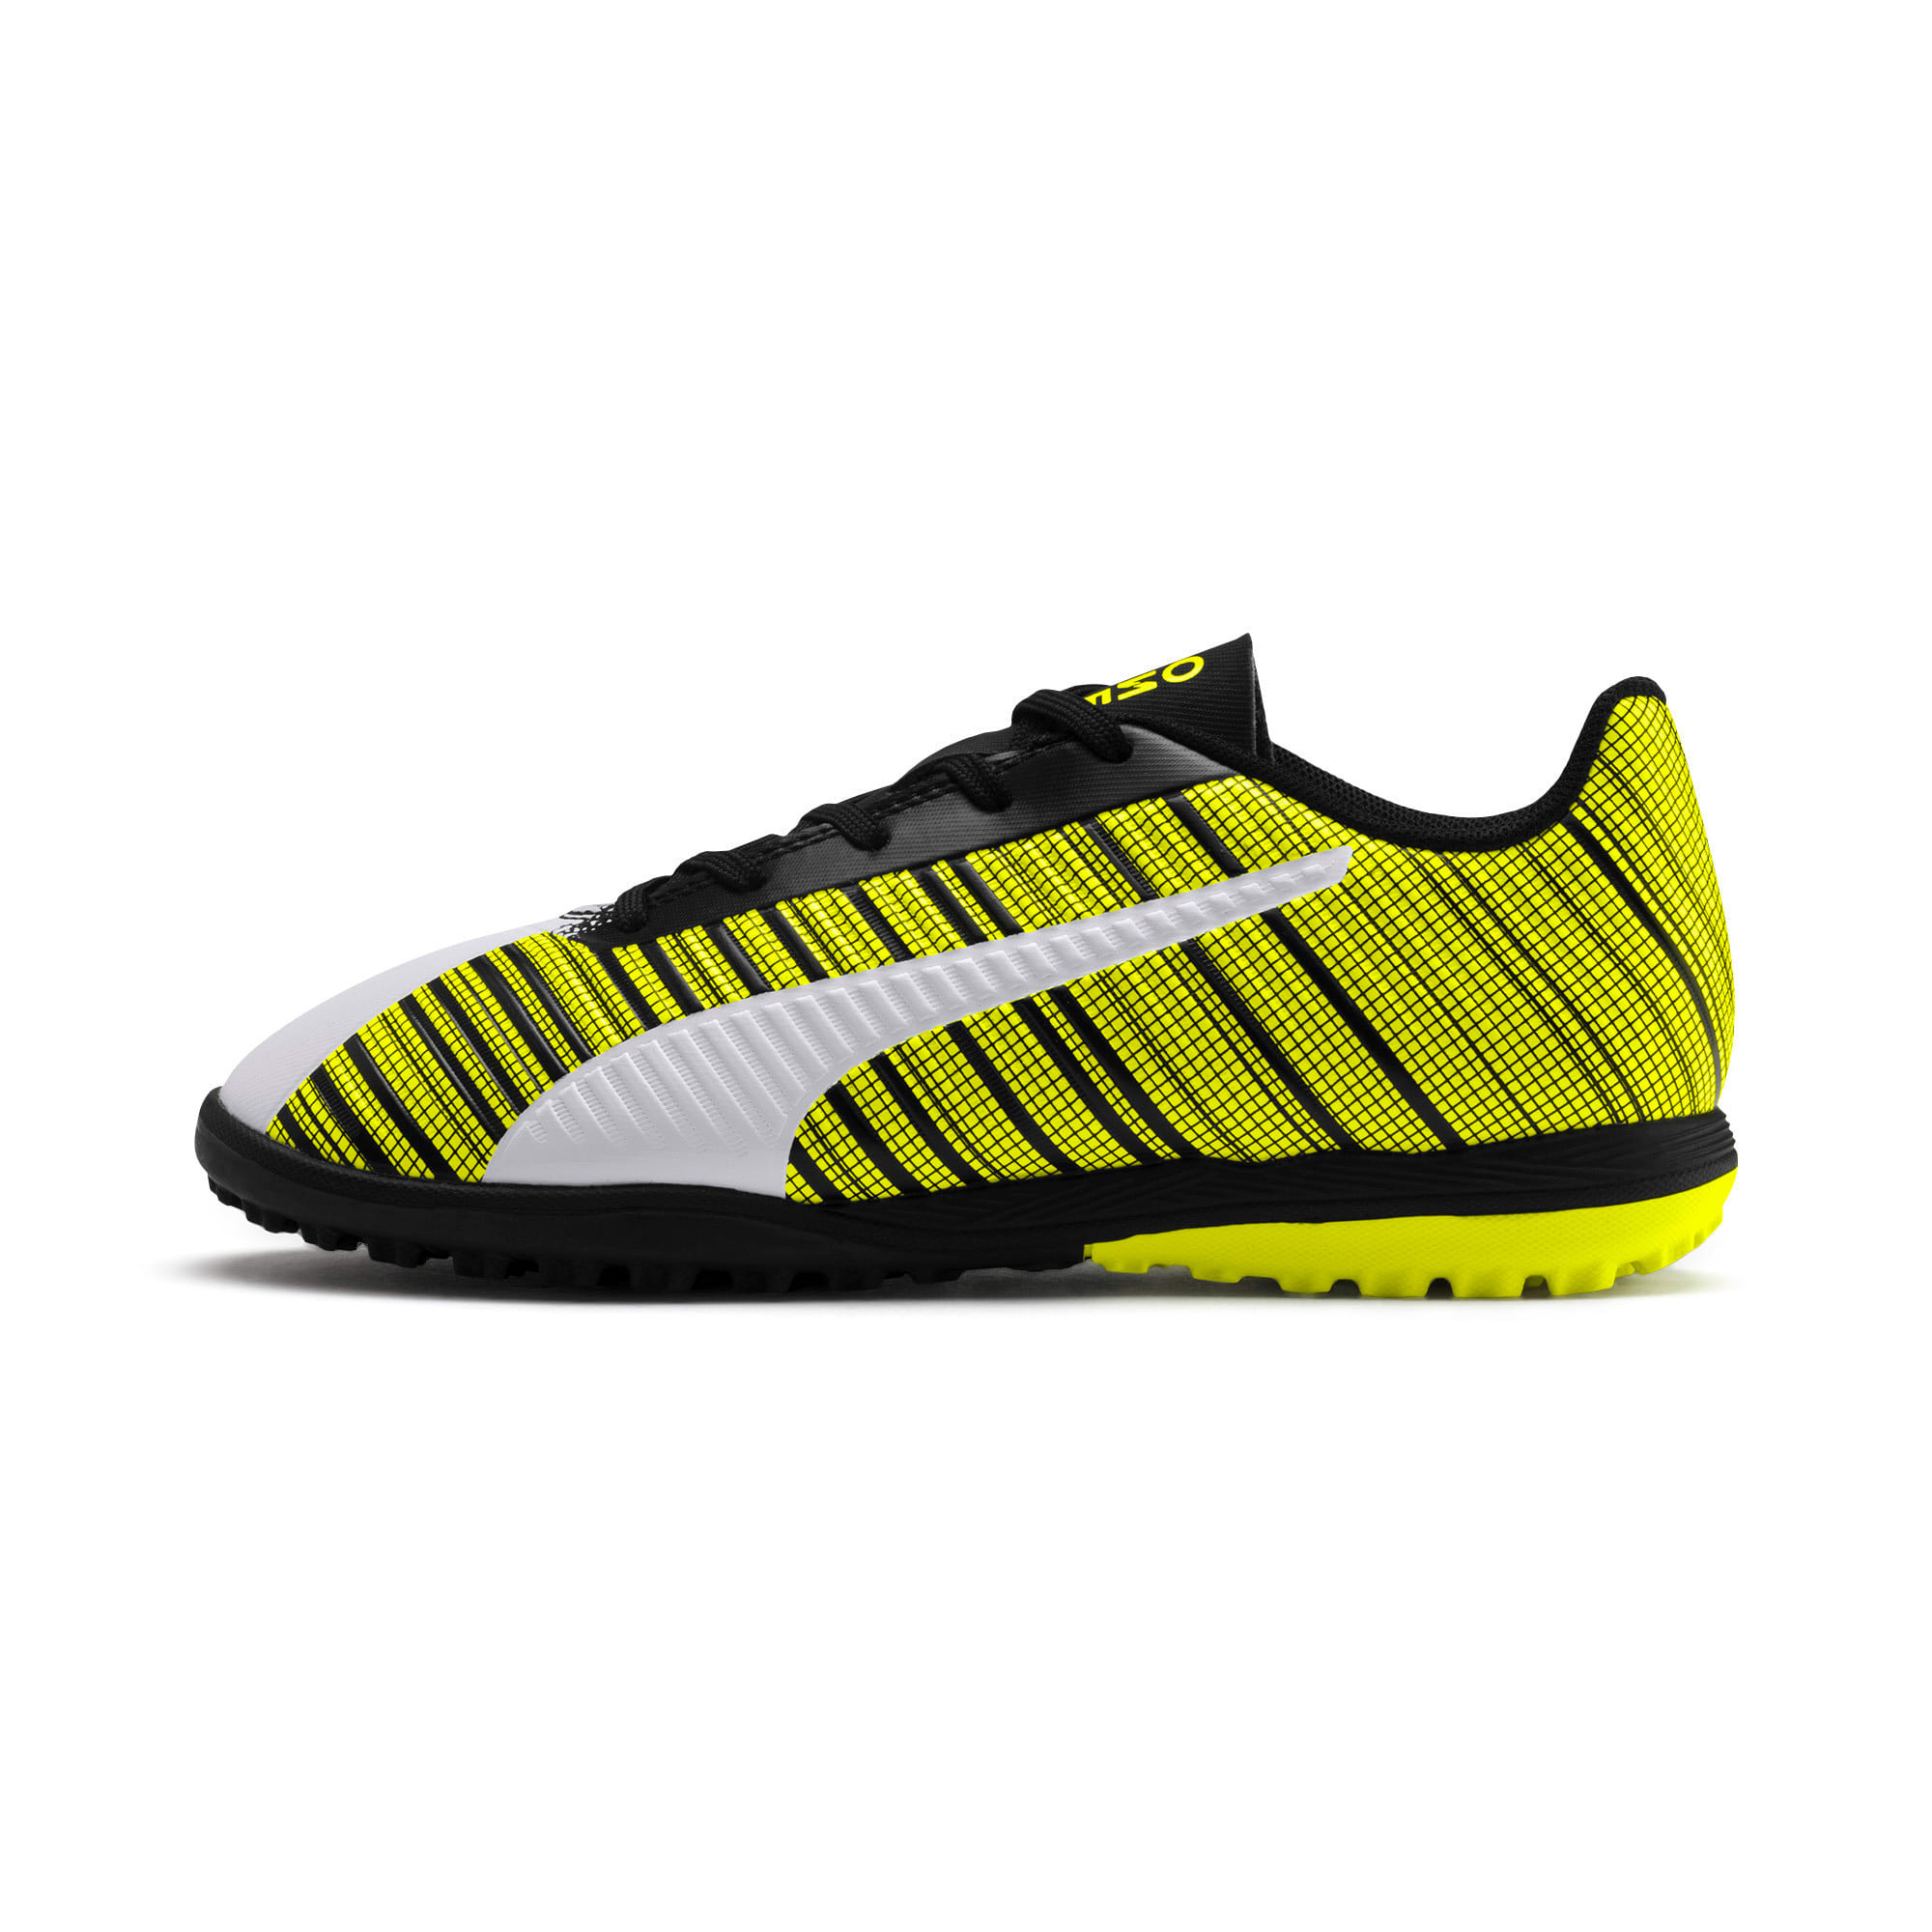 Thumbnail 1 of PUMA ONE 5.4 TT Youth Football Boots, White-Black-Yellow Alert, medium